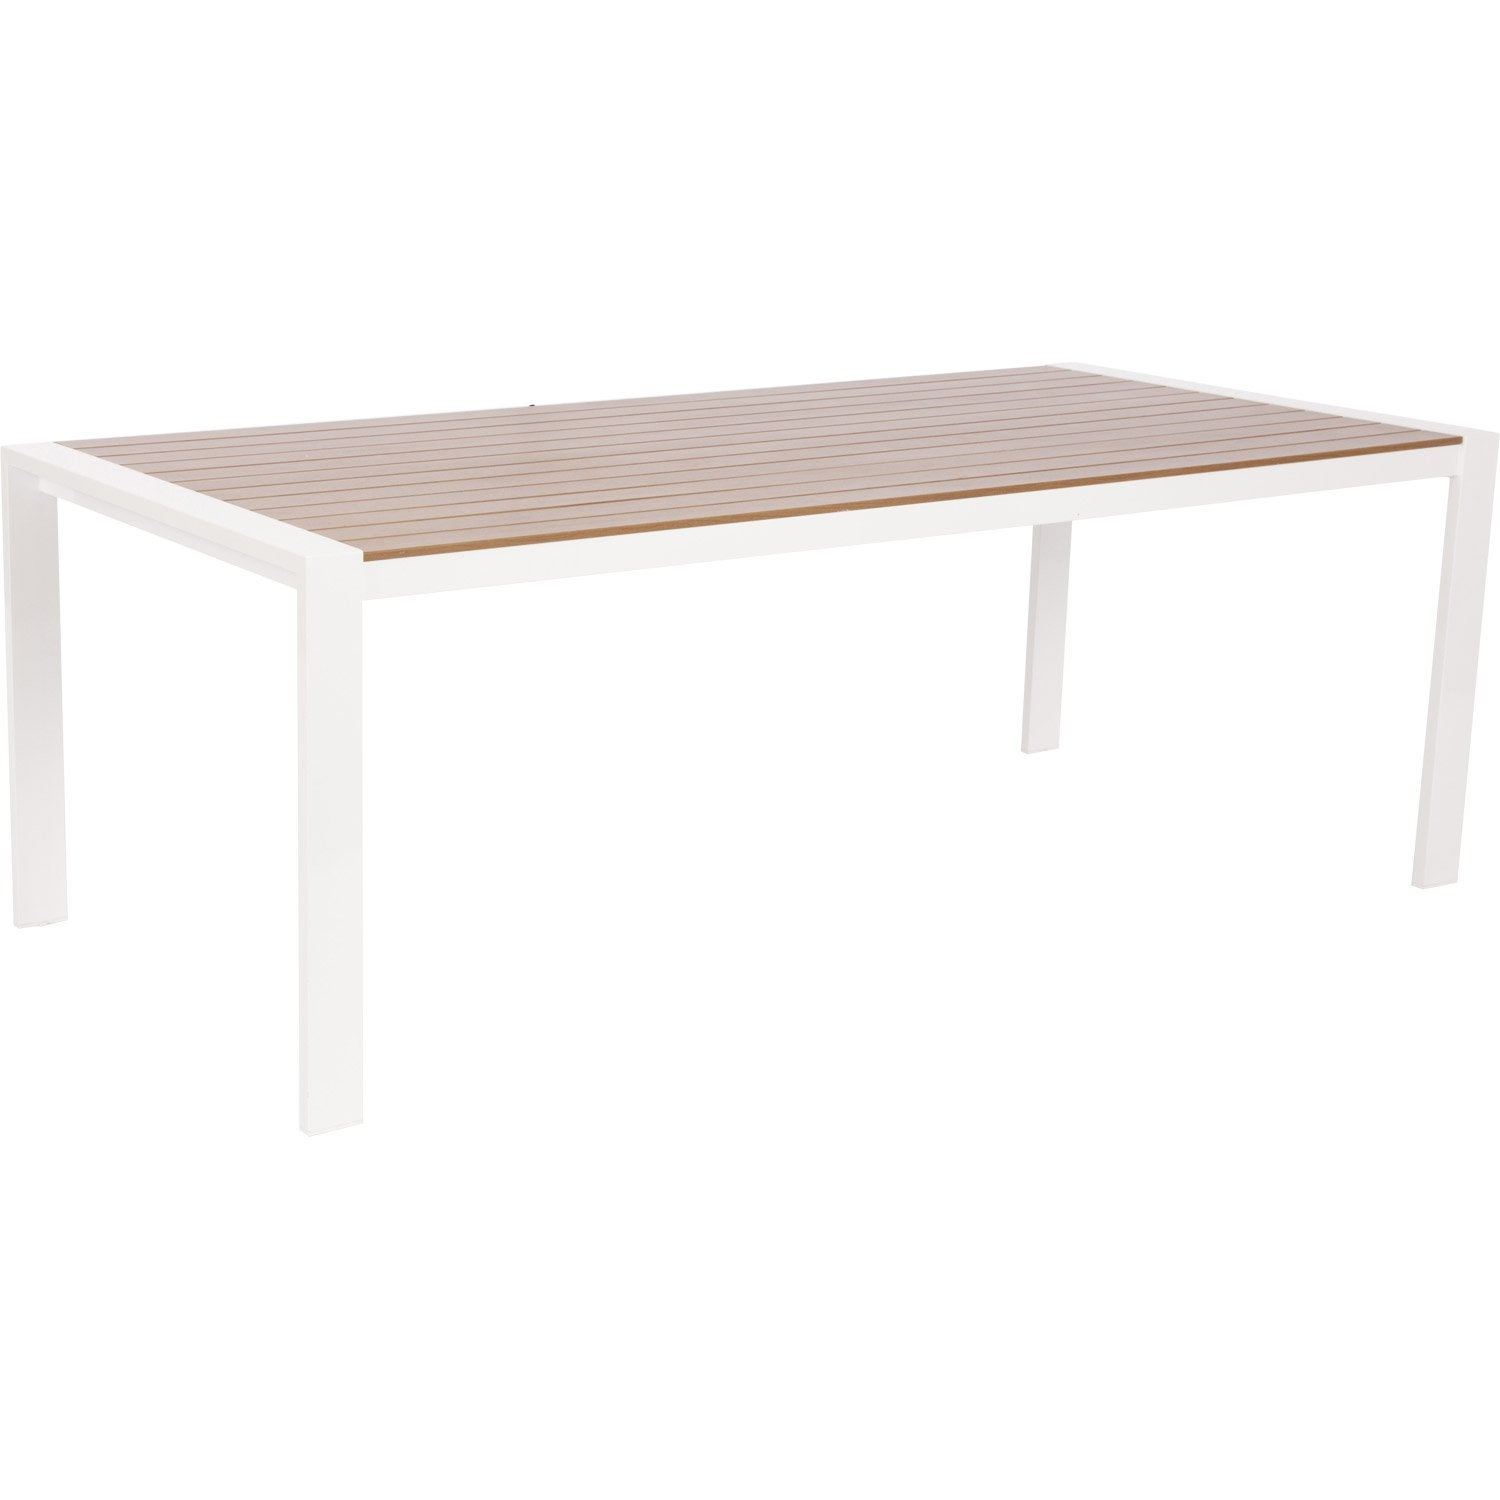 Table de jardin port nelson rectangulaire blanc for Table bois chaise blanche